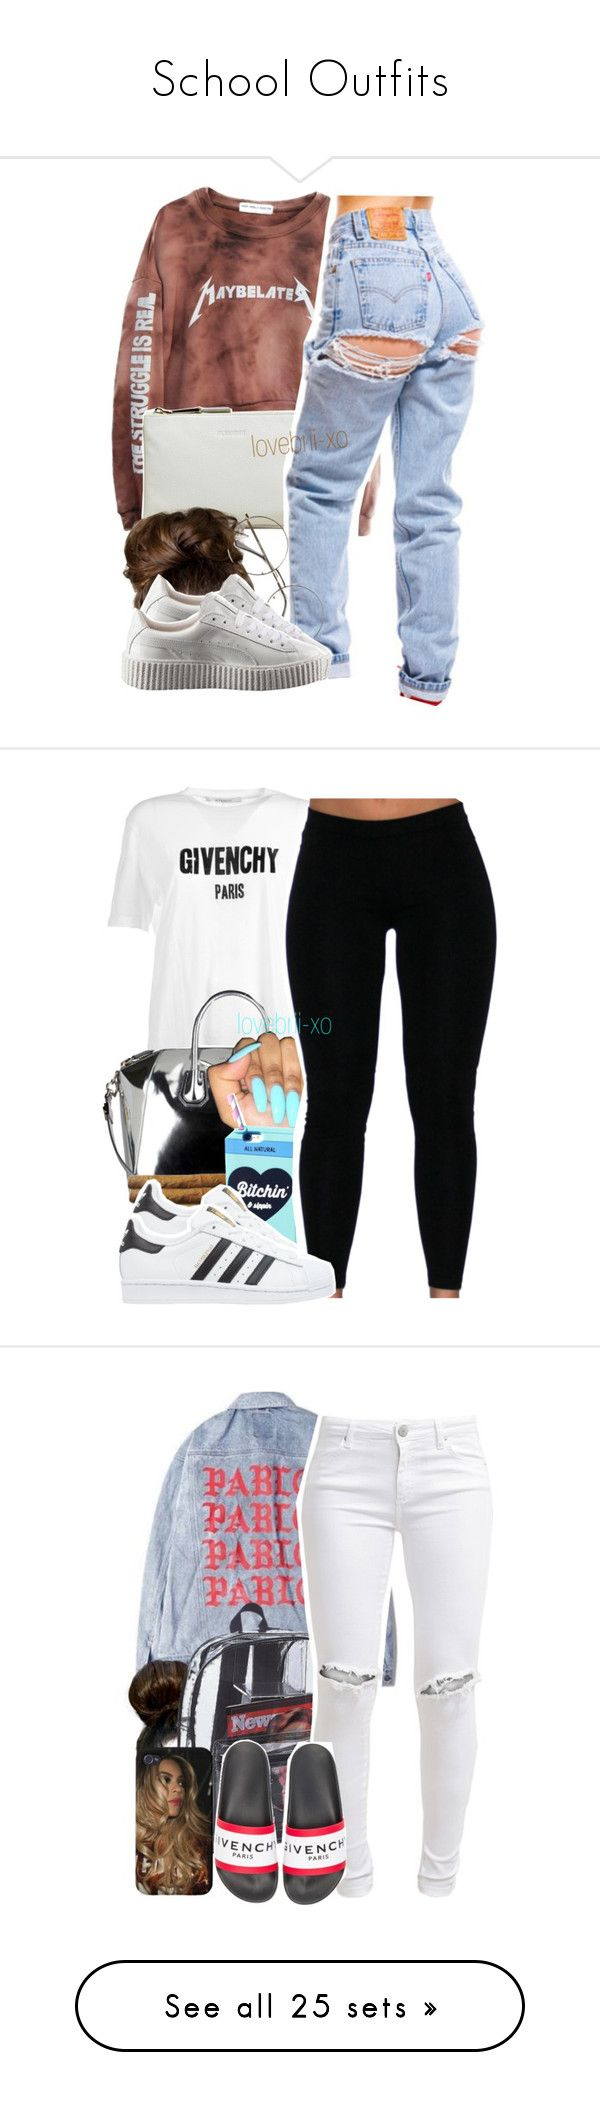 """School Outfits"" by analinajgalaviz ❤ liked on Polyvore featuring High Heels Suicide, Jil Sander, Puma, Givenchy, Valfré, adidas Originals, FiveUnits, Chanel, Topshop and adidas"